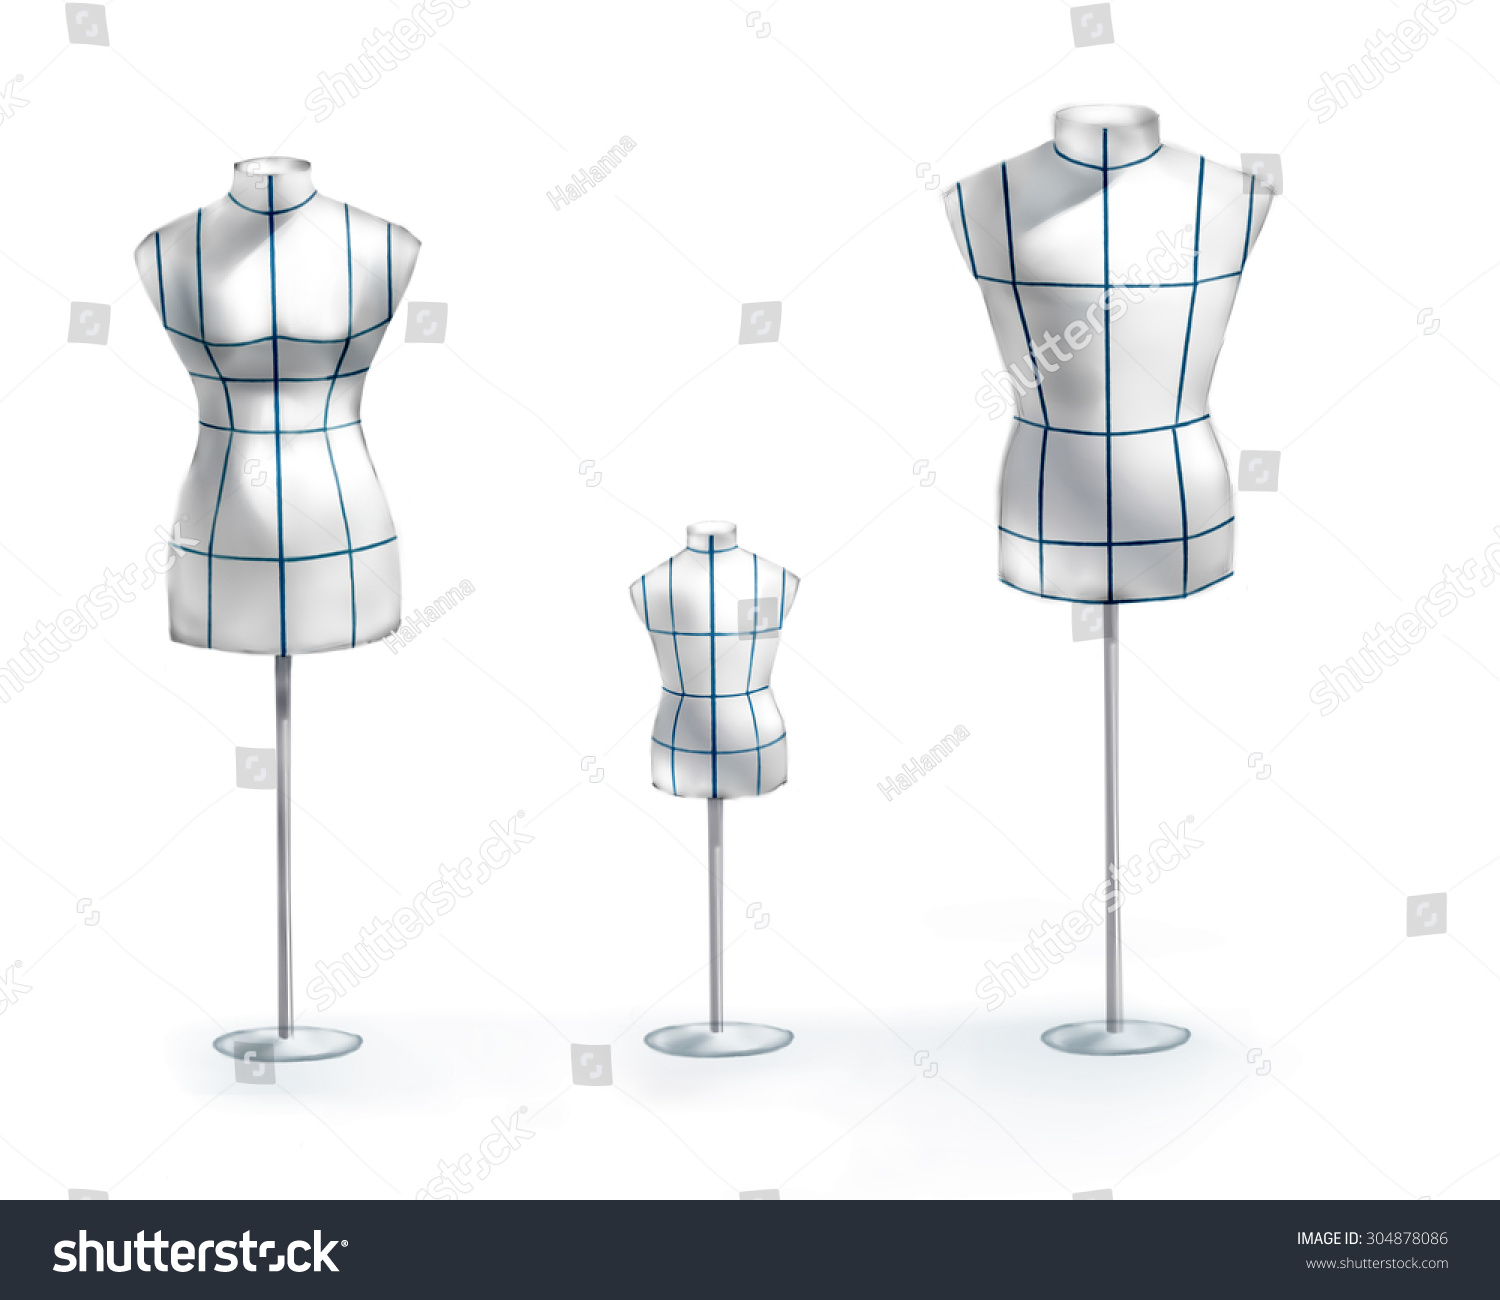 Hand Draw Fashion Illustration Watercolor Mannequins Stock Illustration 304878086